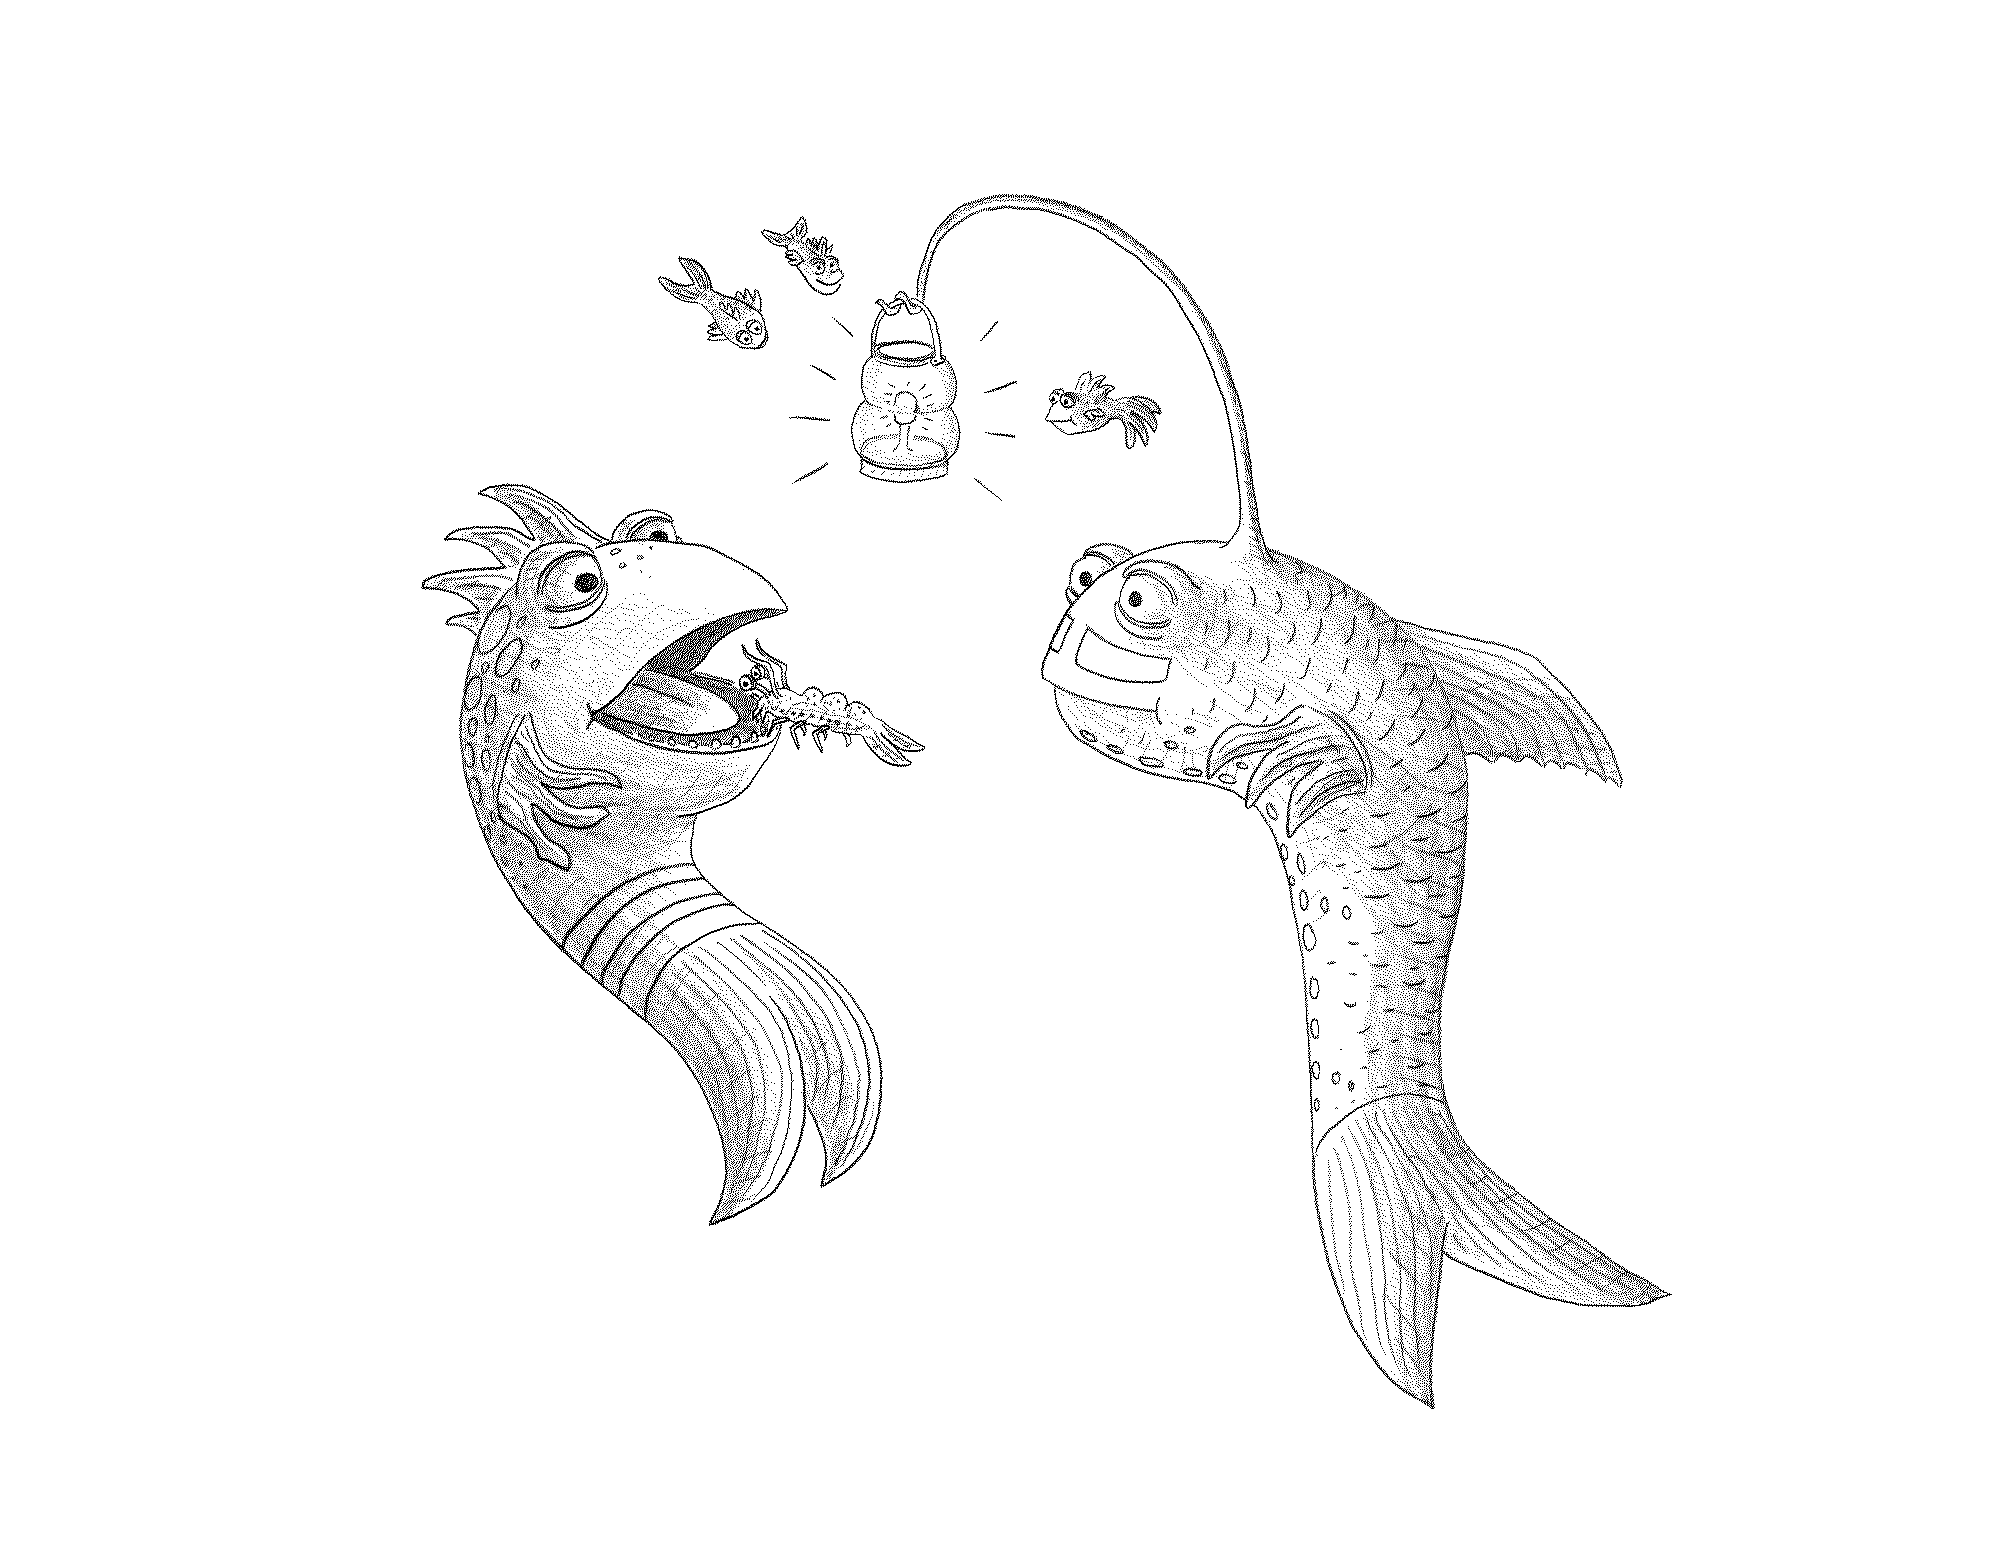 pout pout fish coloring page - pout pout fish coloring pages